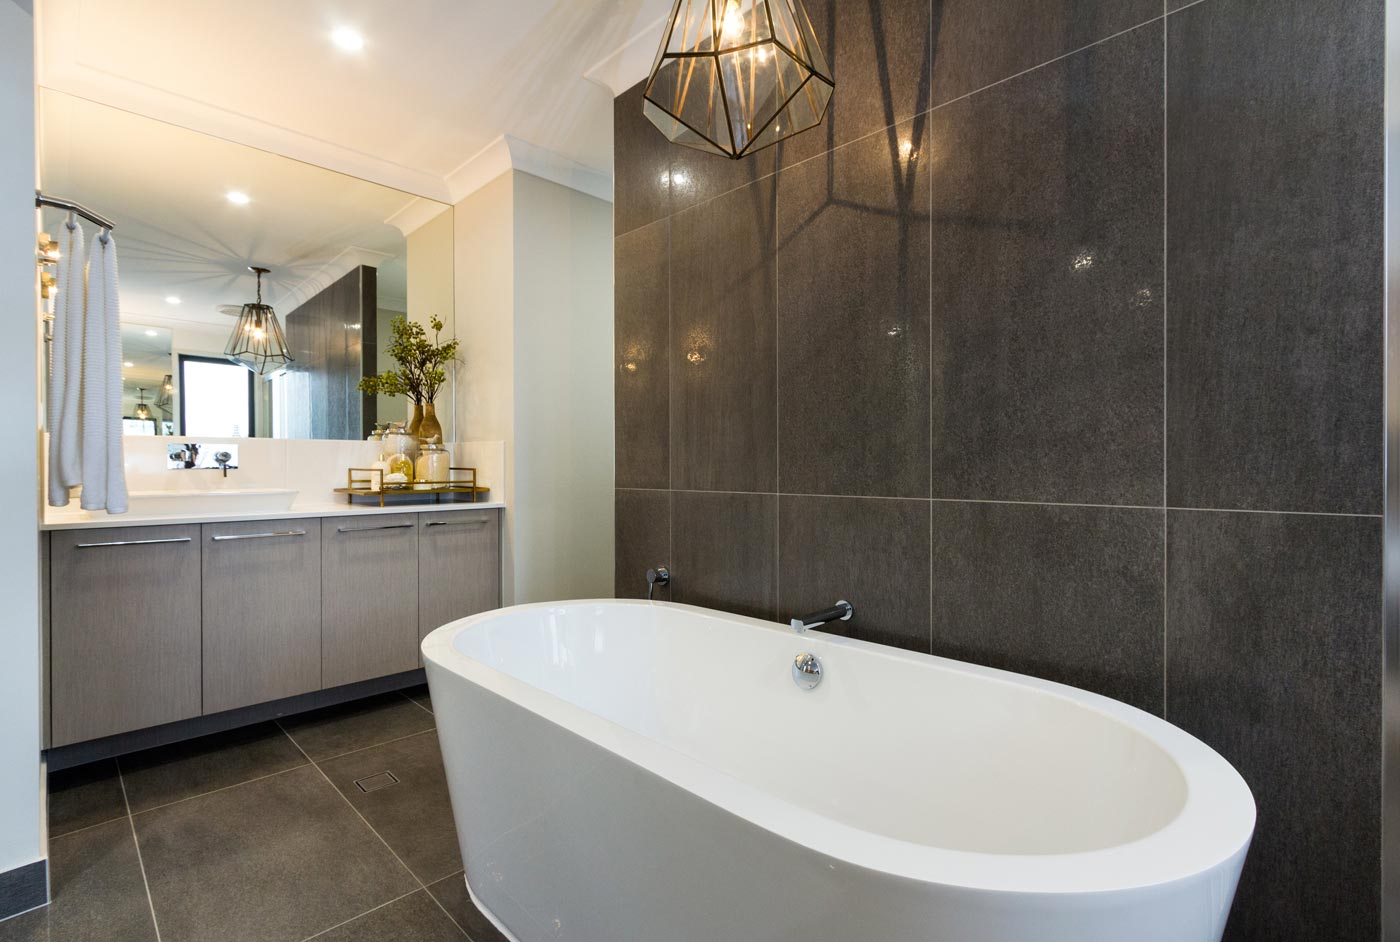 5 Essential Steps to Remodel a Bathroom